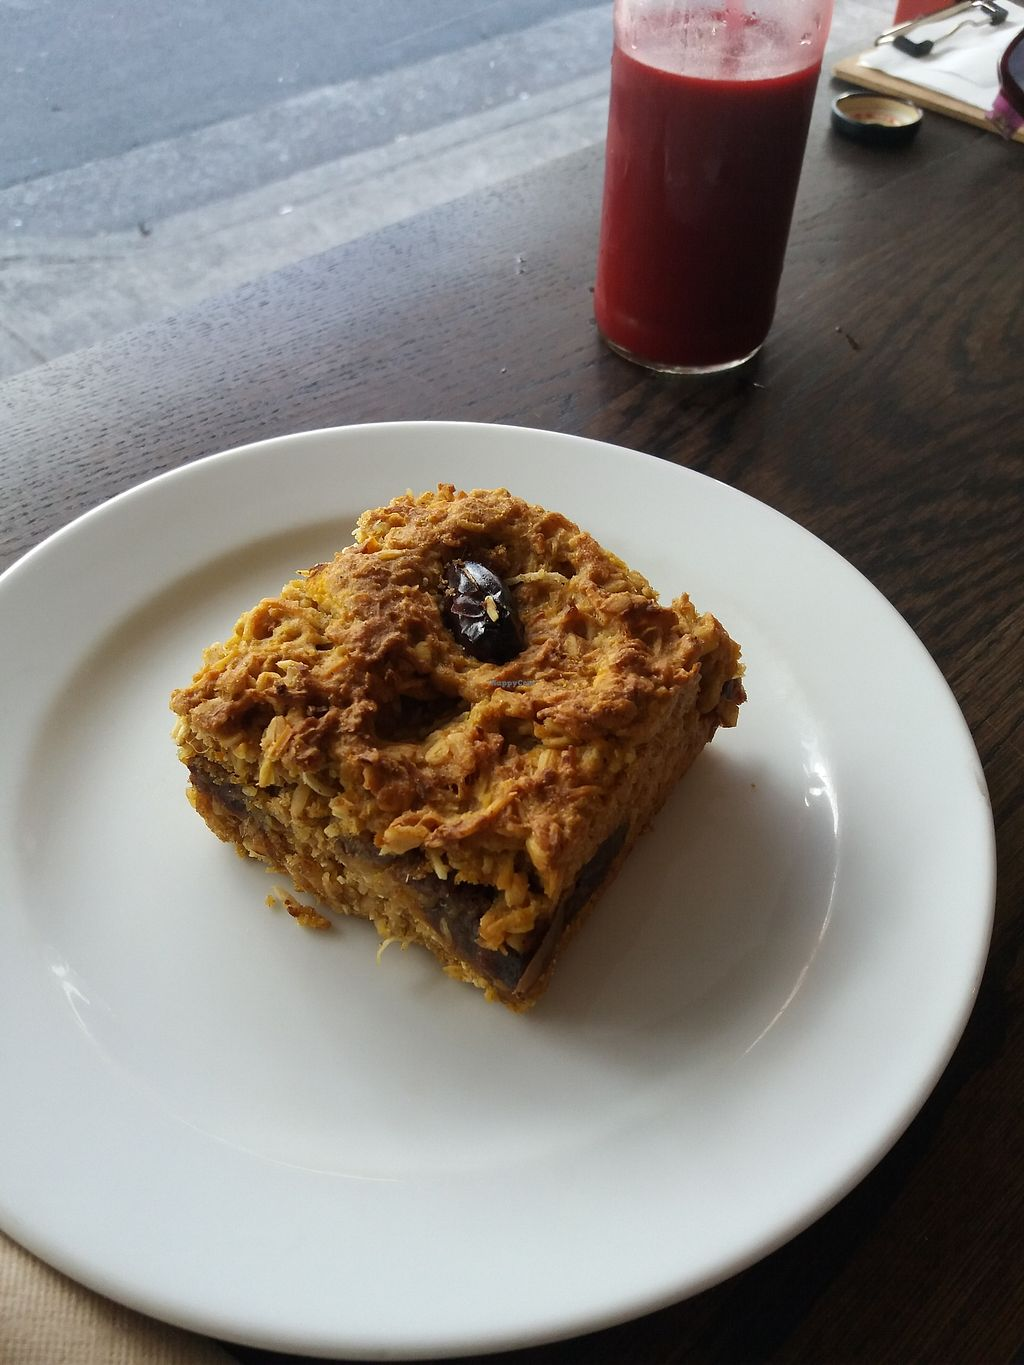 "Photo of Earth Food Store Cafe  by <a href=""/members/profile/veganvirtues"">veganvirtues</a> <br/>Cinnamy date and orange cake <br/> October 23, 2017  - <a href='/contact/abuse/image/33606/317959'>Report</a>"